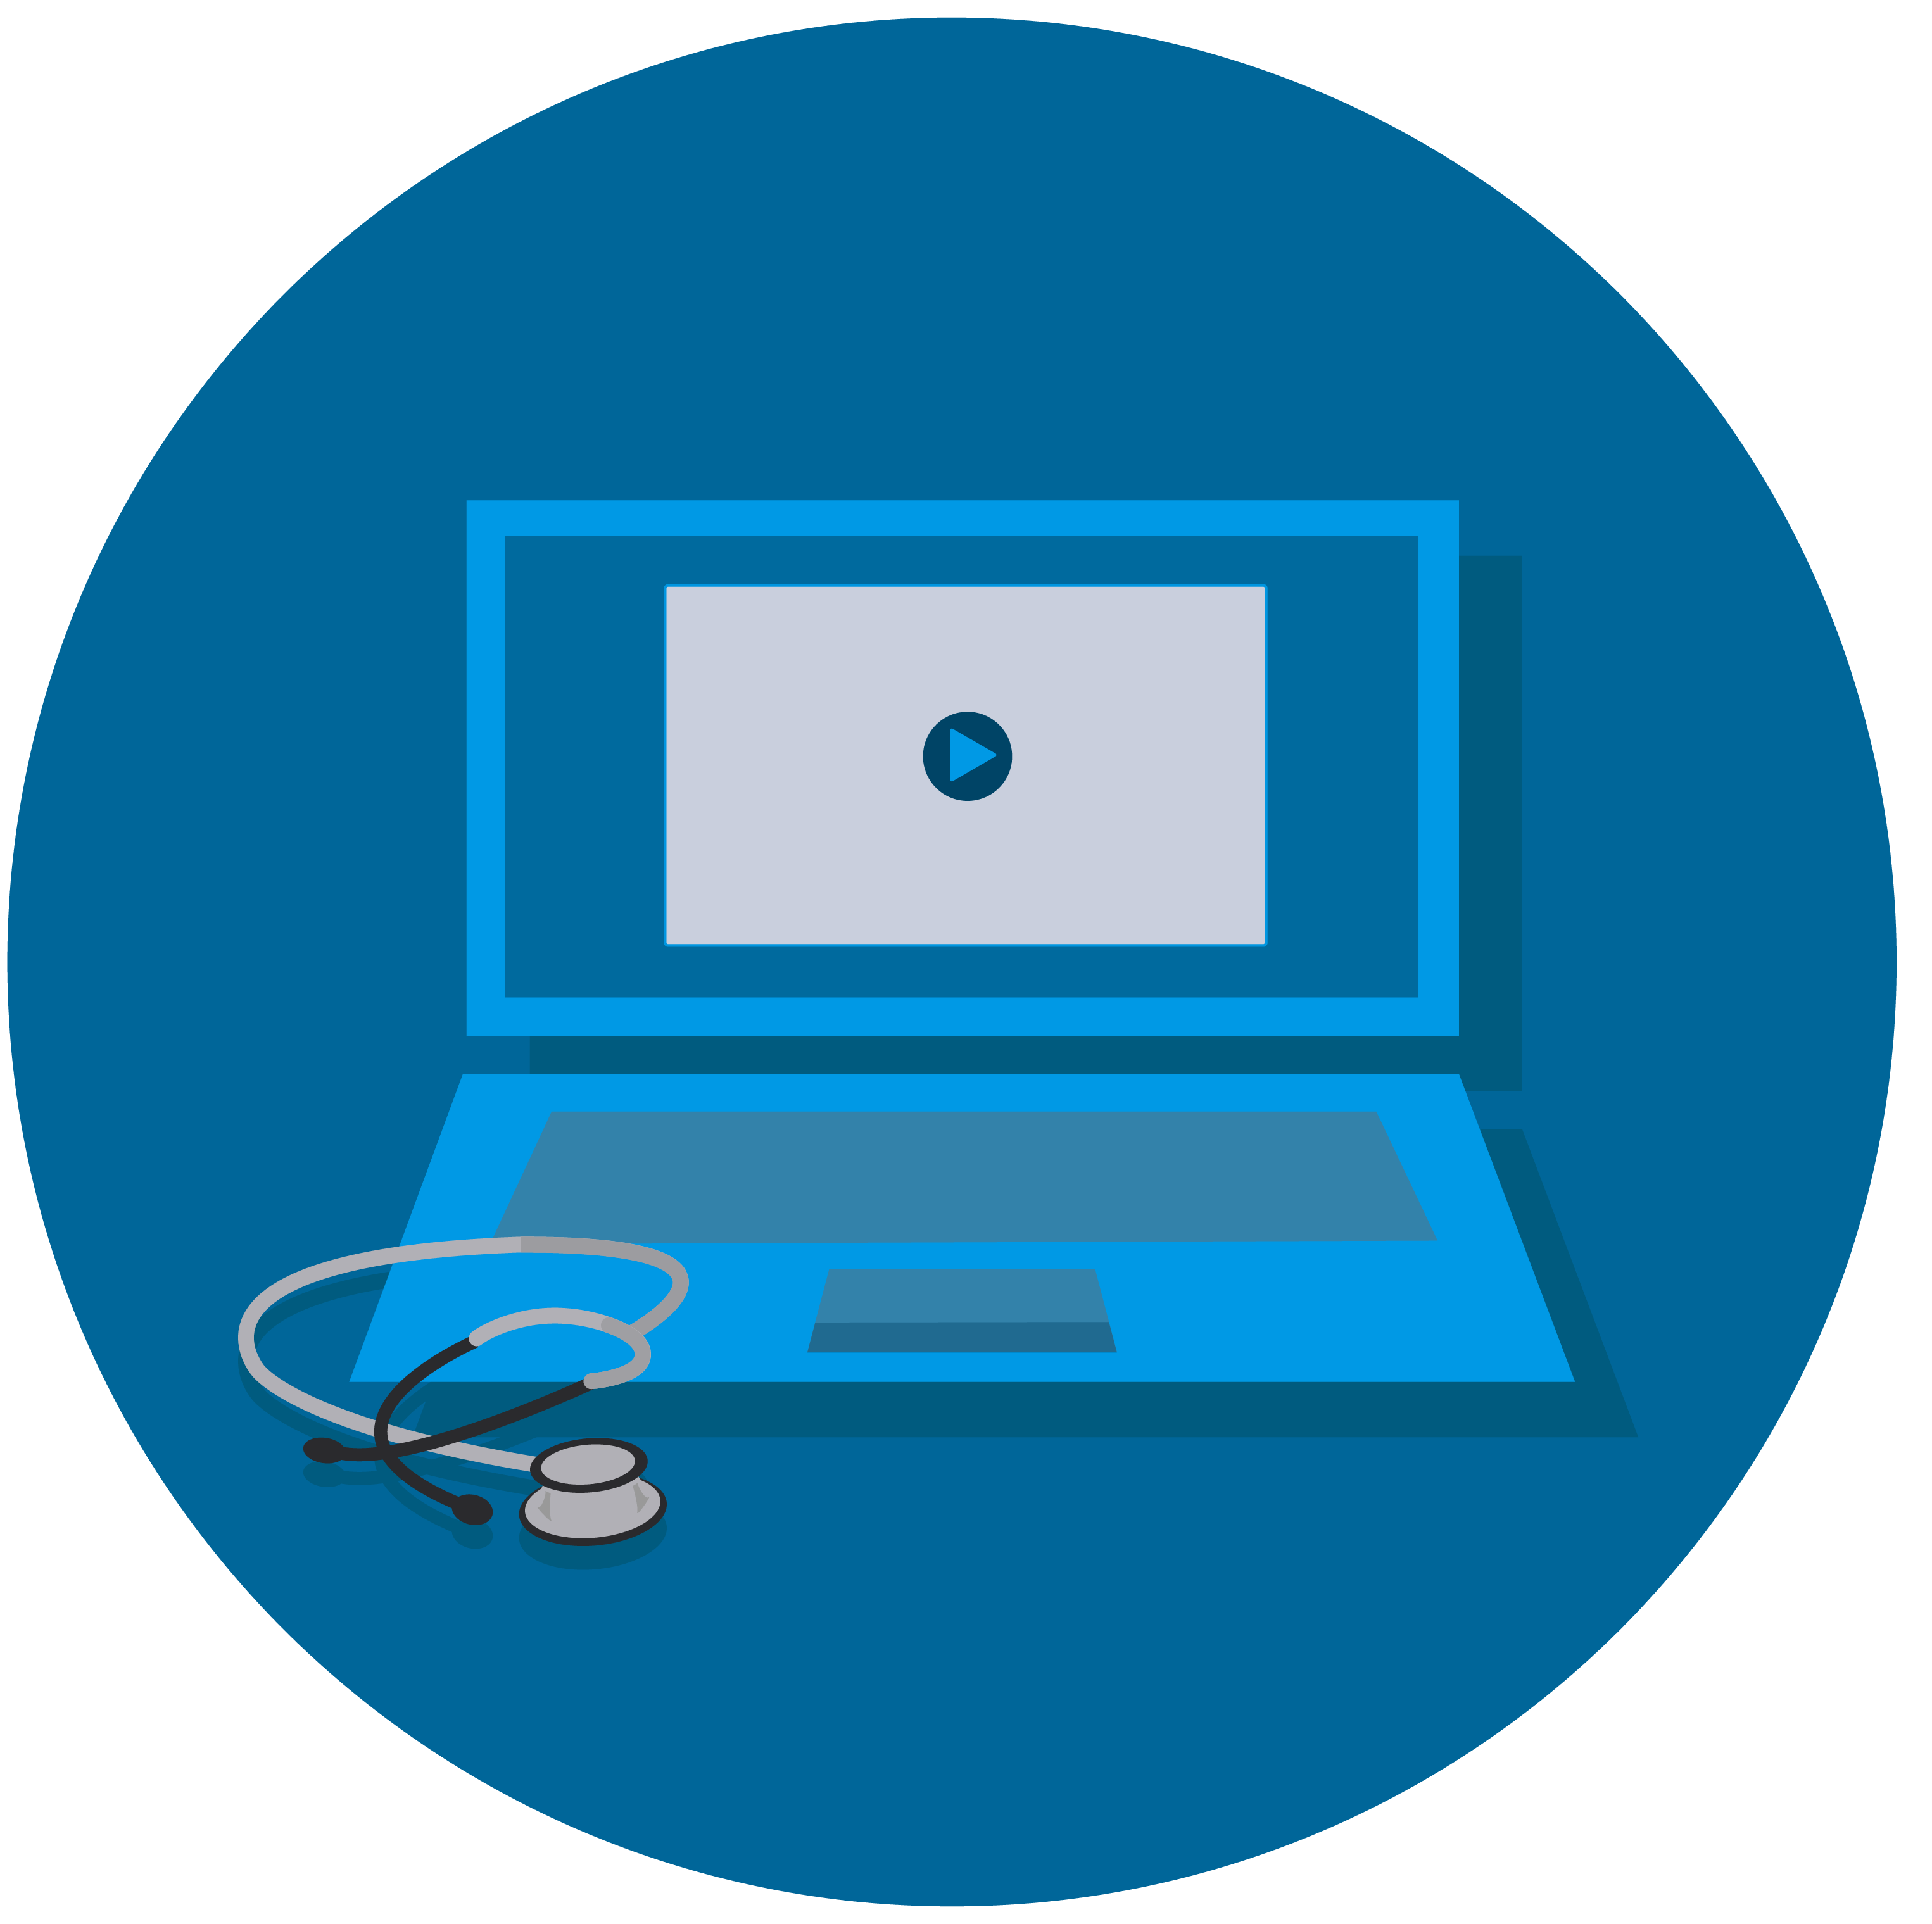 Image of a computer and stethoscope